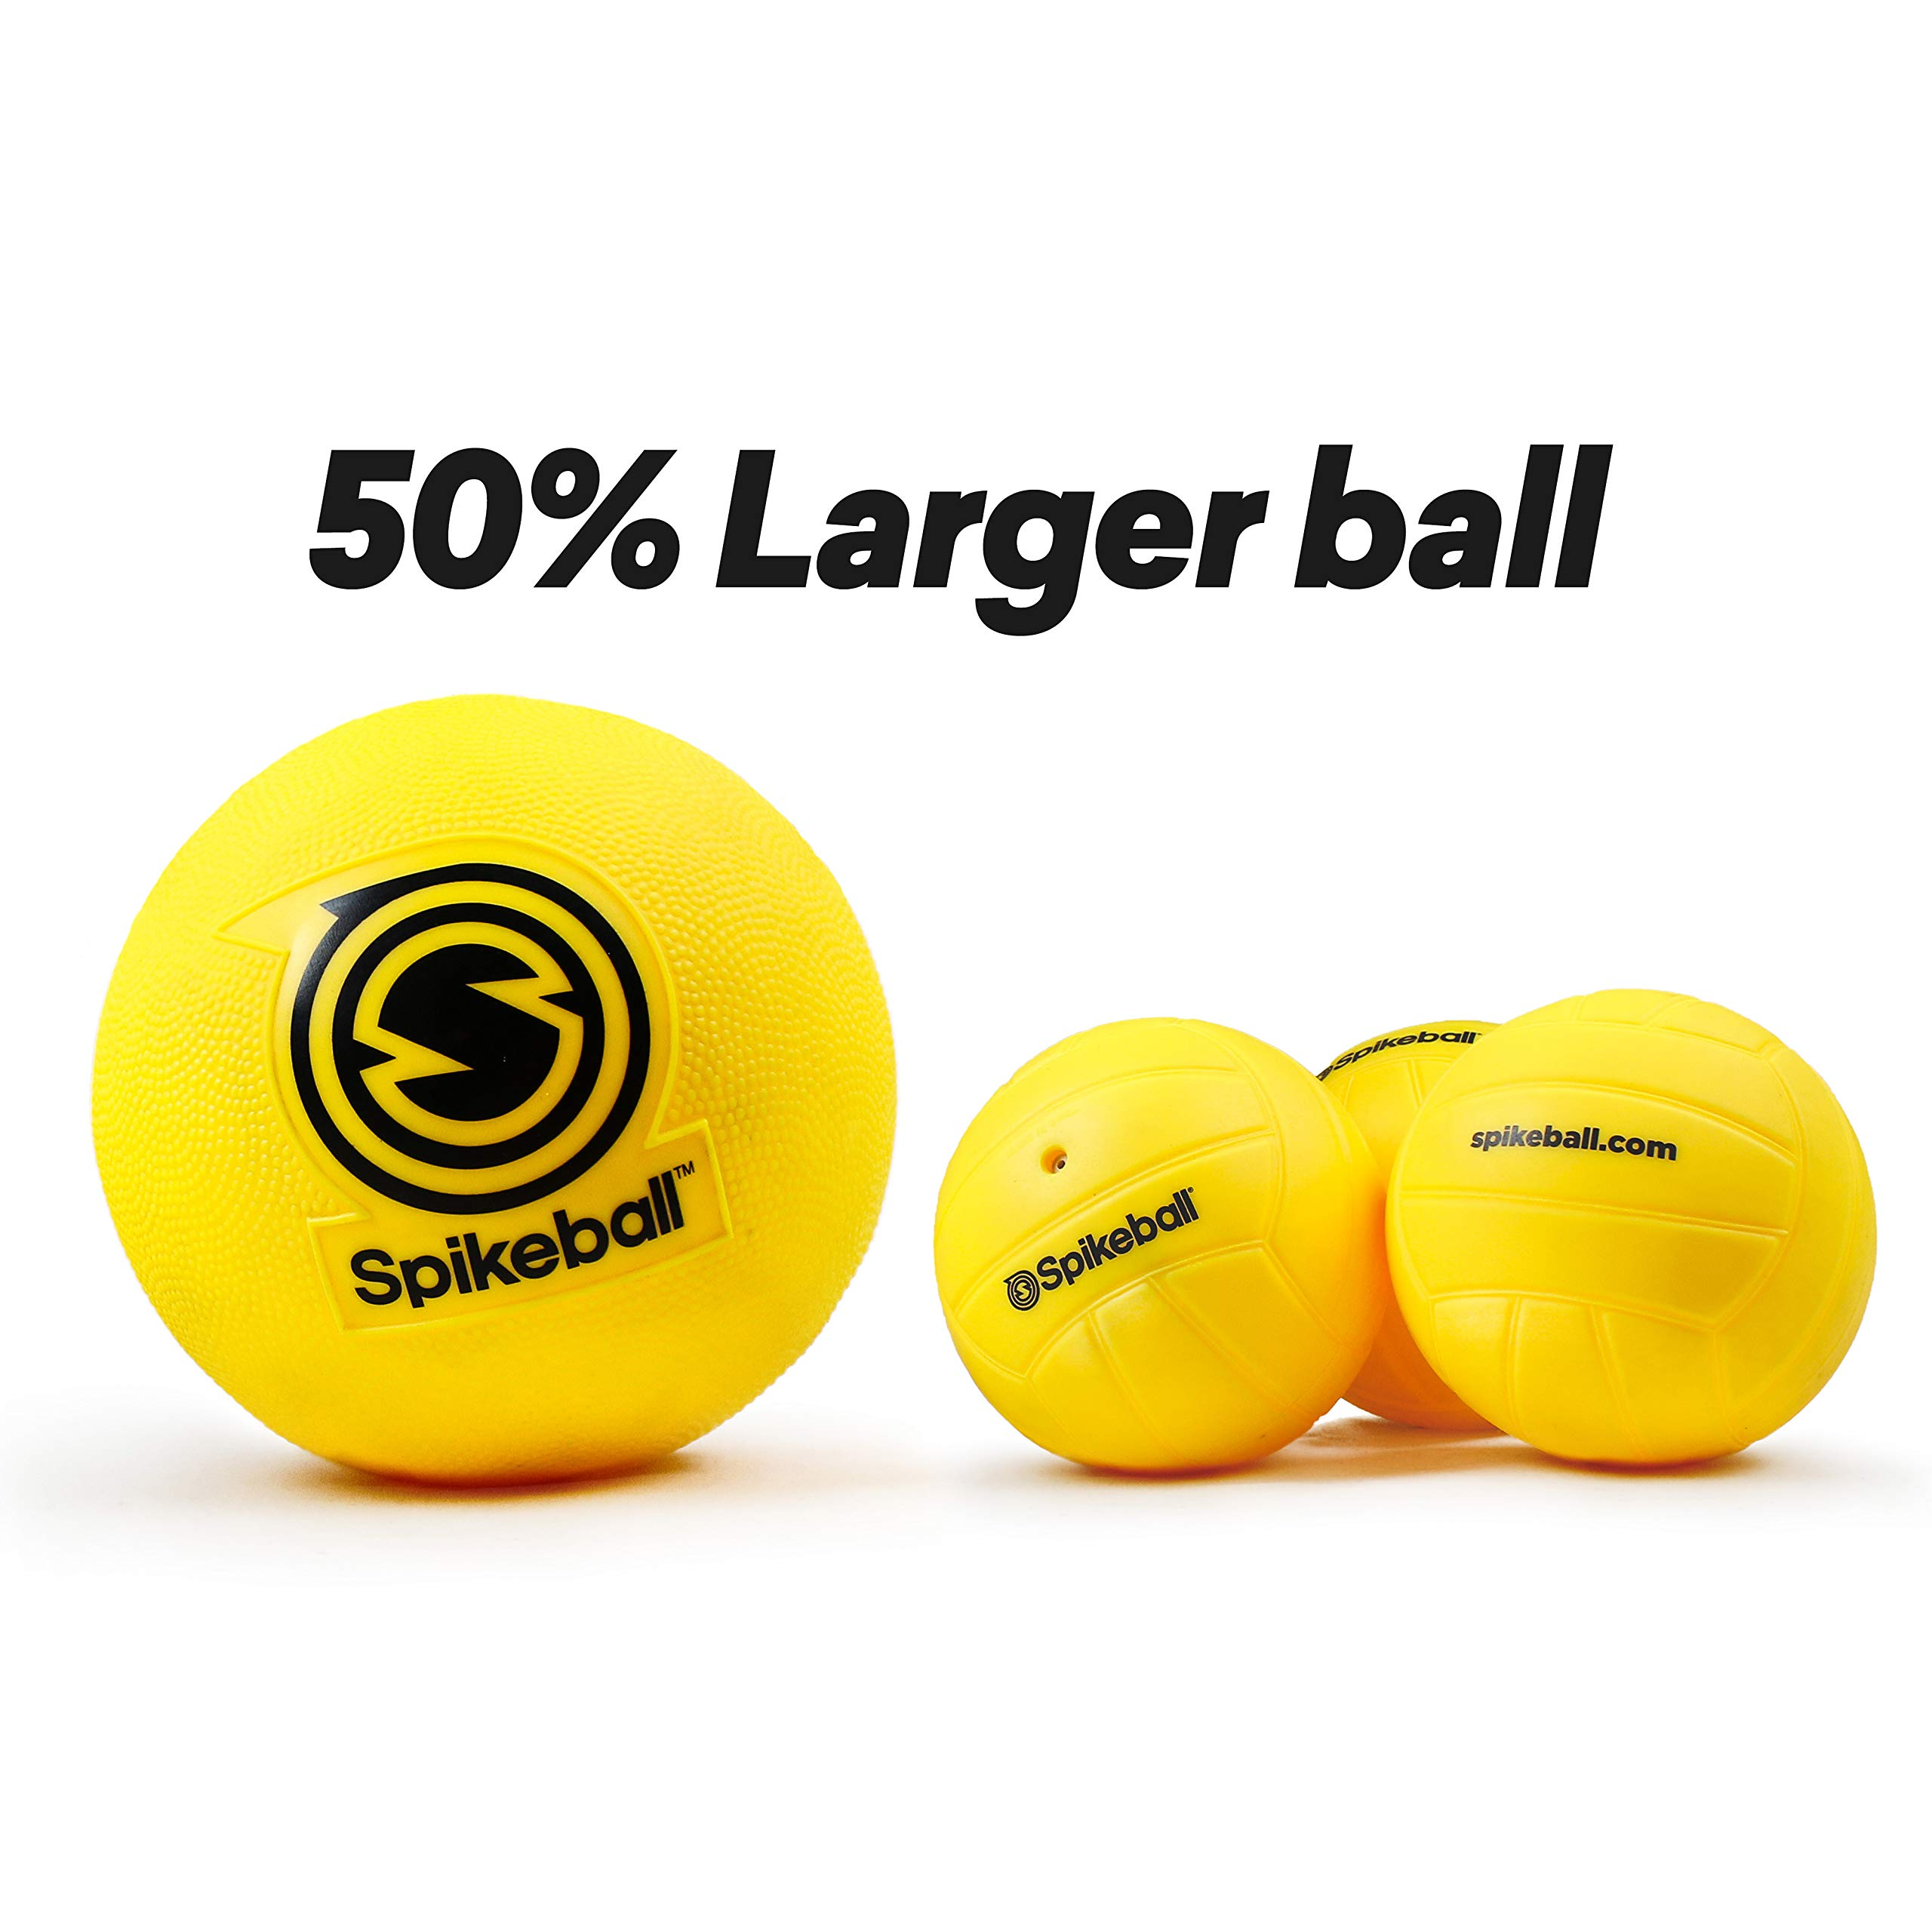 Spikeball Starter Kit - 50% Larger Net and Ball - Played Outdoors, Indoors, Yard, Lawn, Beach - Designed for Kids 12 and Under by Spikeball (Image #3)